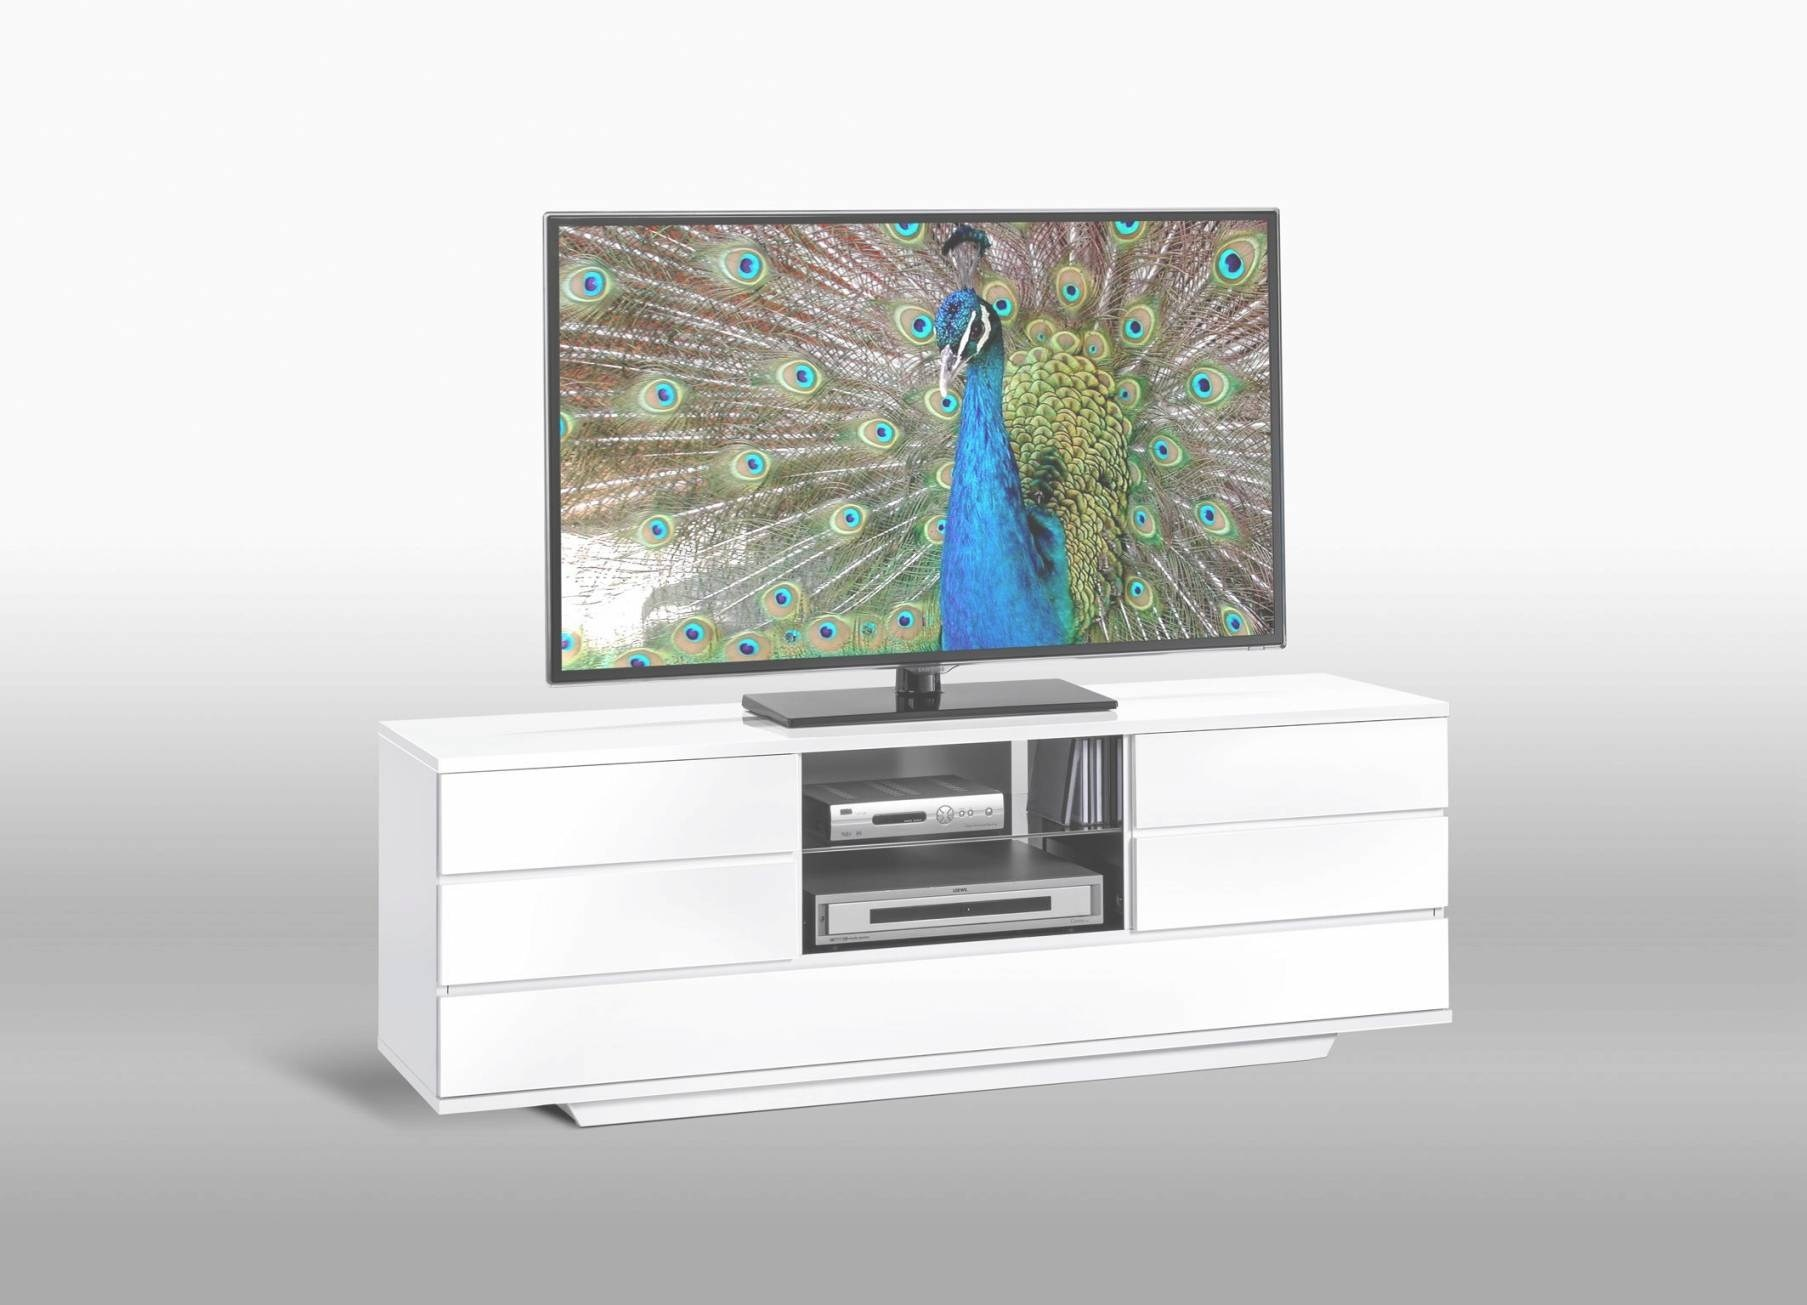 Meuble Tv D Angle Design Meuble D Angle Tv Design Meuble Tv  # Meuble Tv D Angle Design